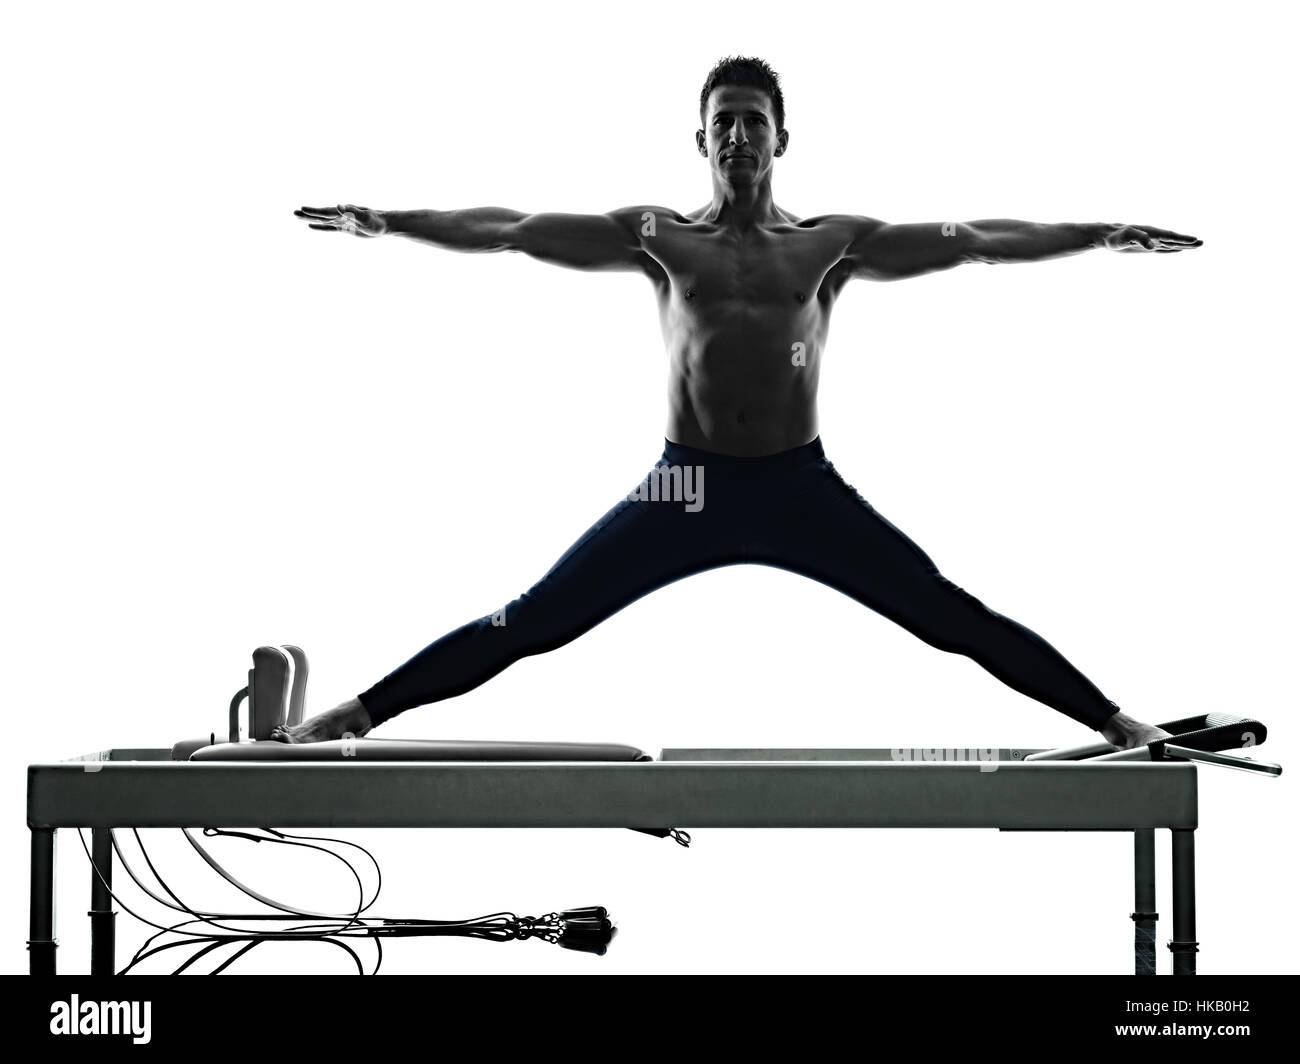 one caucasian man exercising pilates reformer exercises fitness in silhouette isolated on white backgound - Stock Image